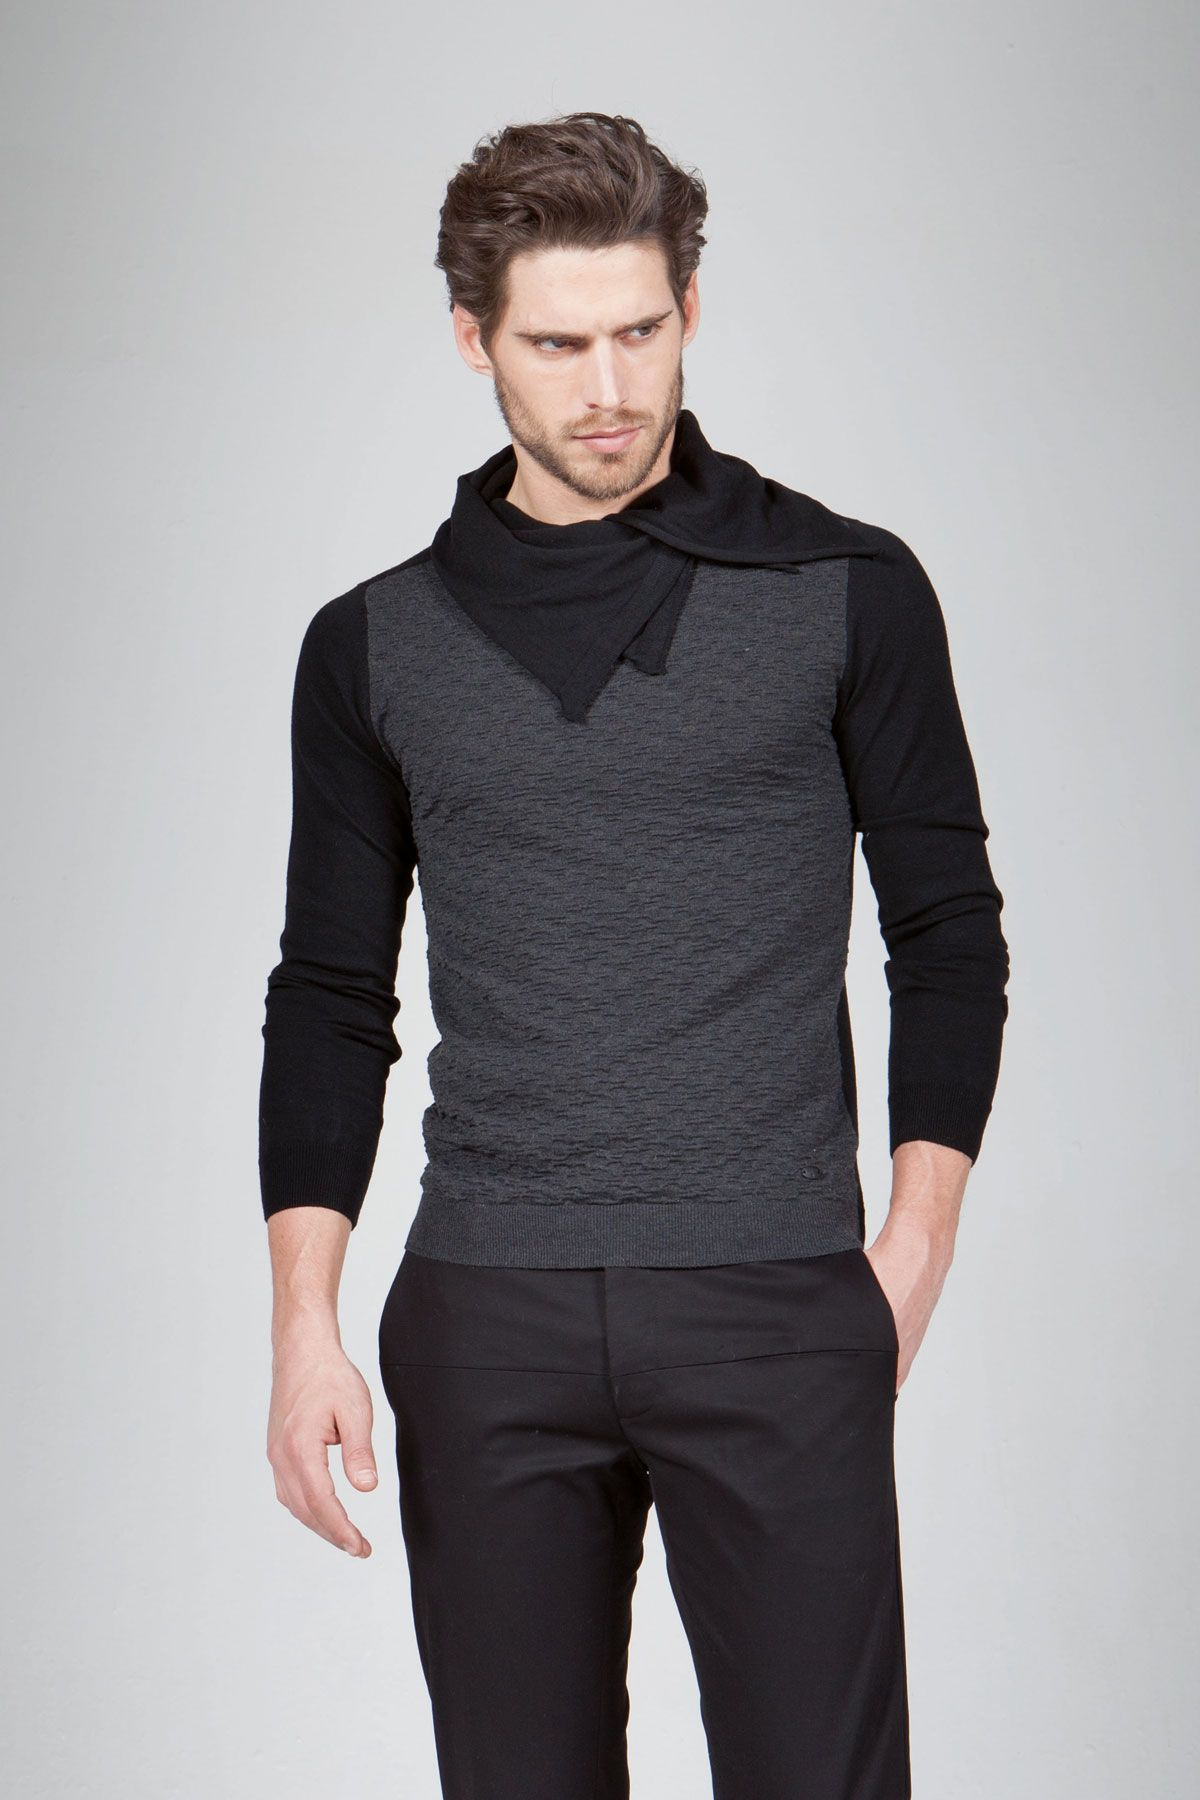 Gaudì - Men's F/W '14-15 Collection - look 36 - #GaudiOfficial